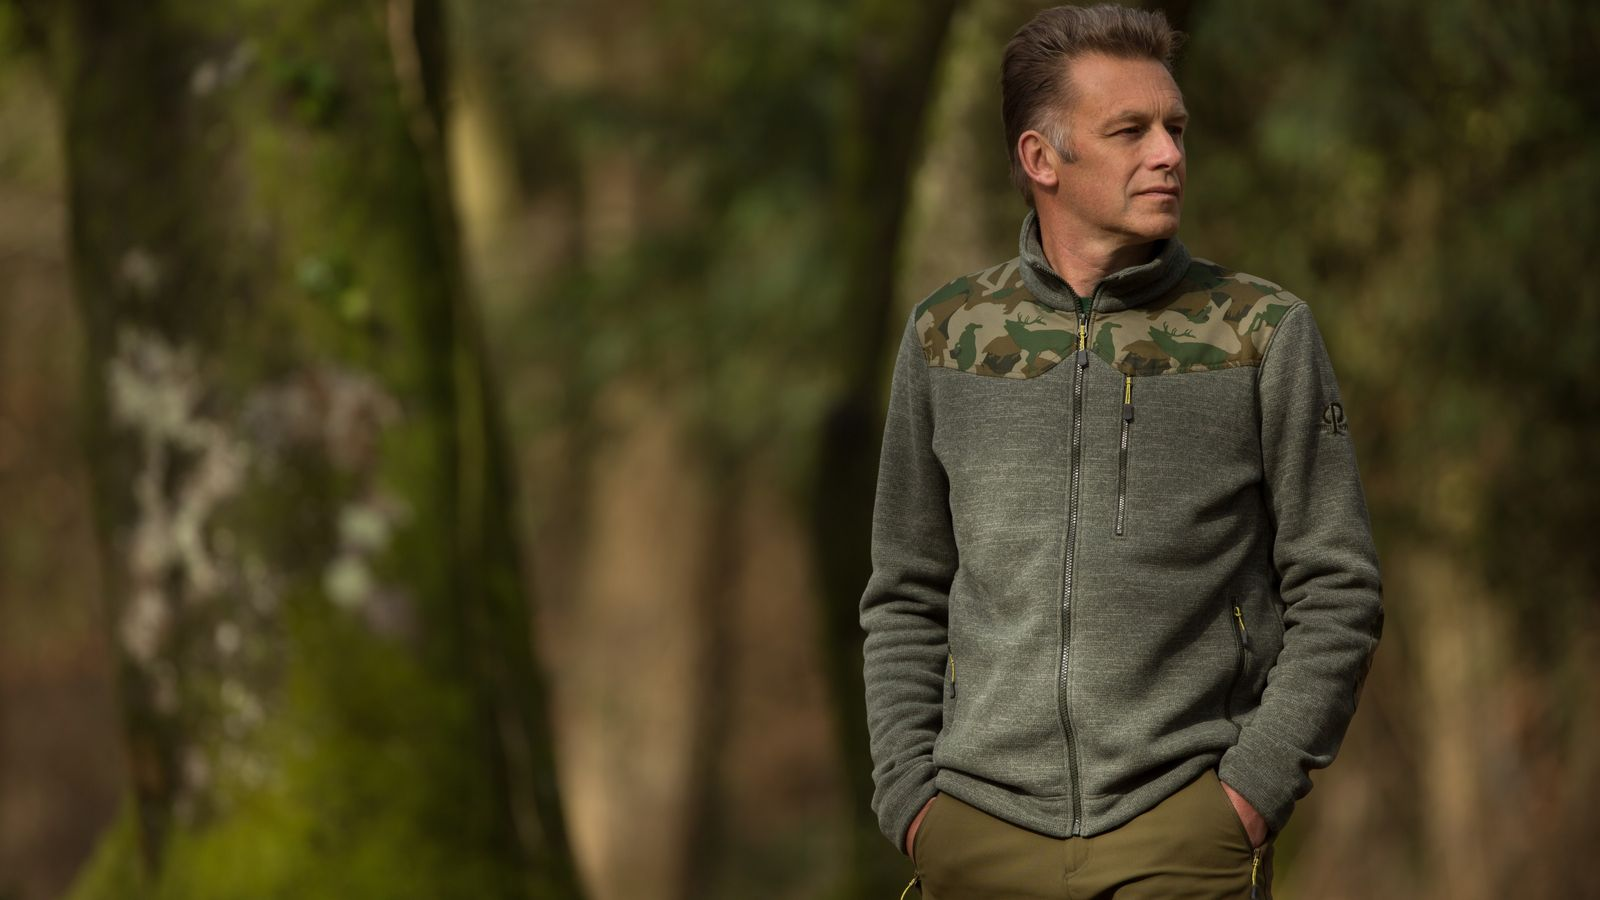 Wildlife expert and television presenter Chris Packham's environmental awareness began at an early age, when he ...